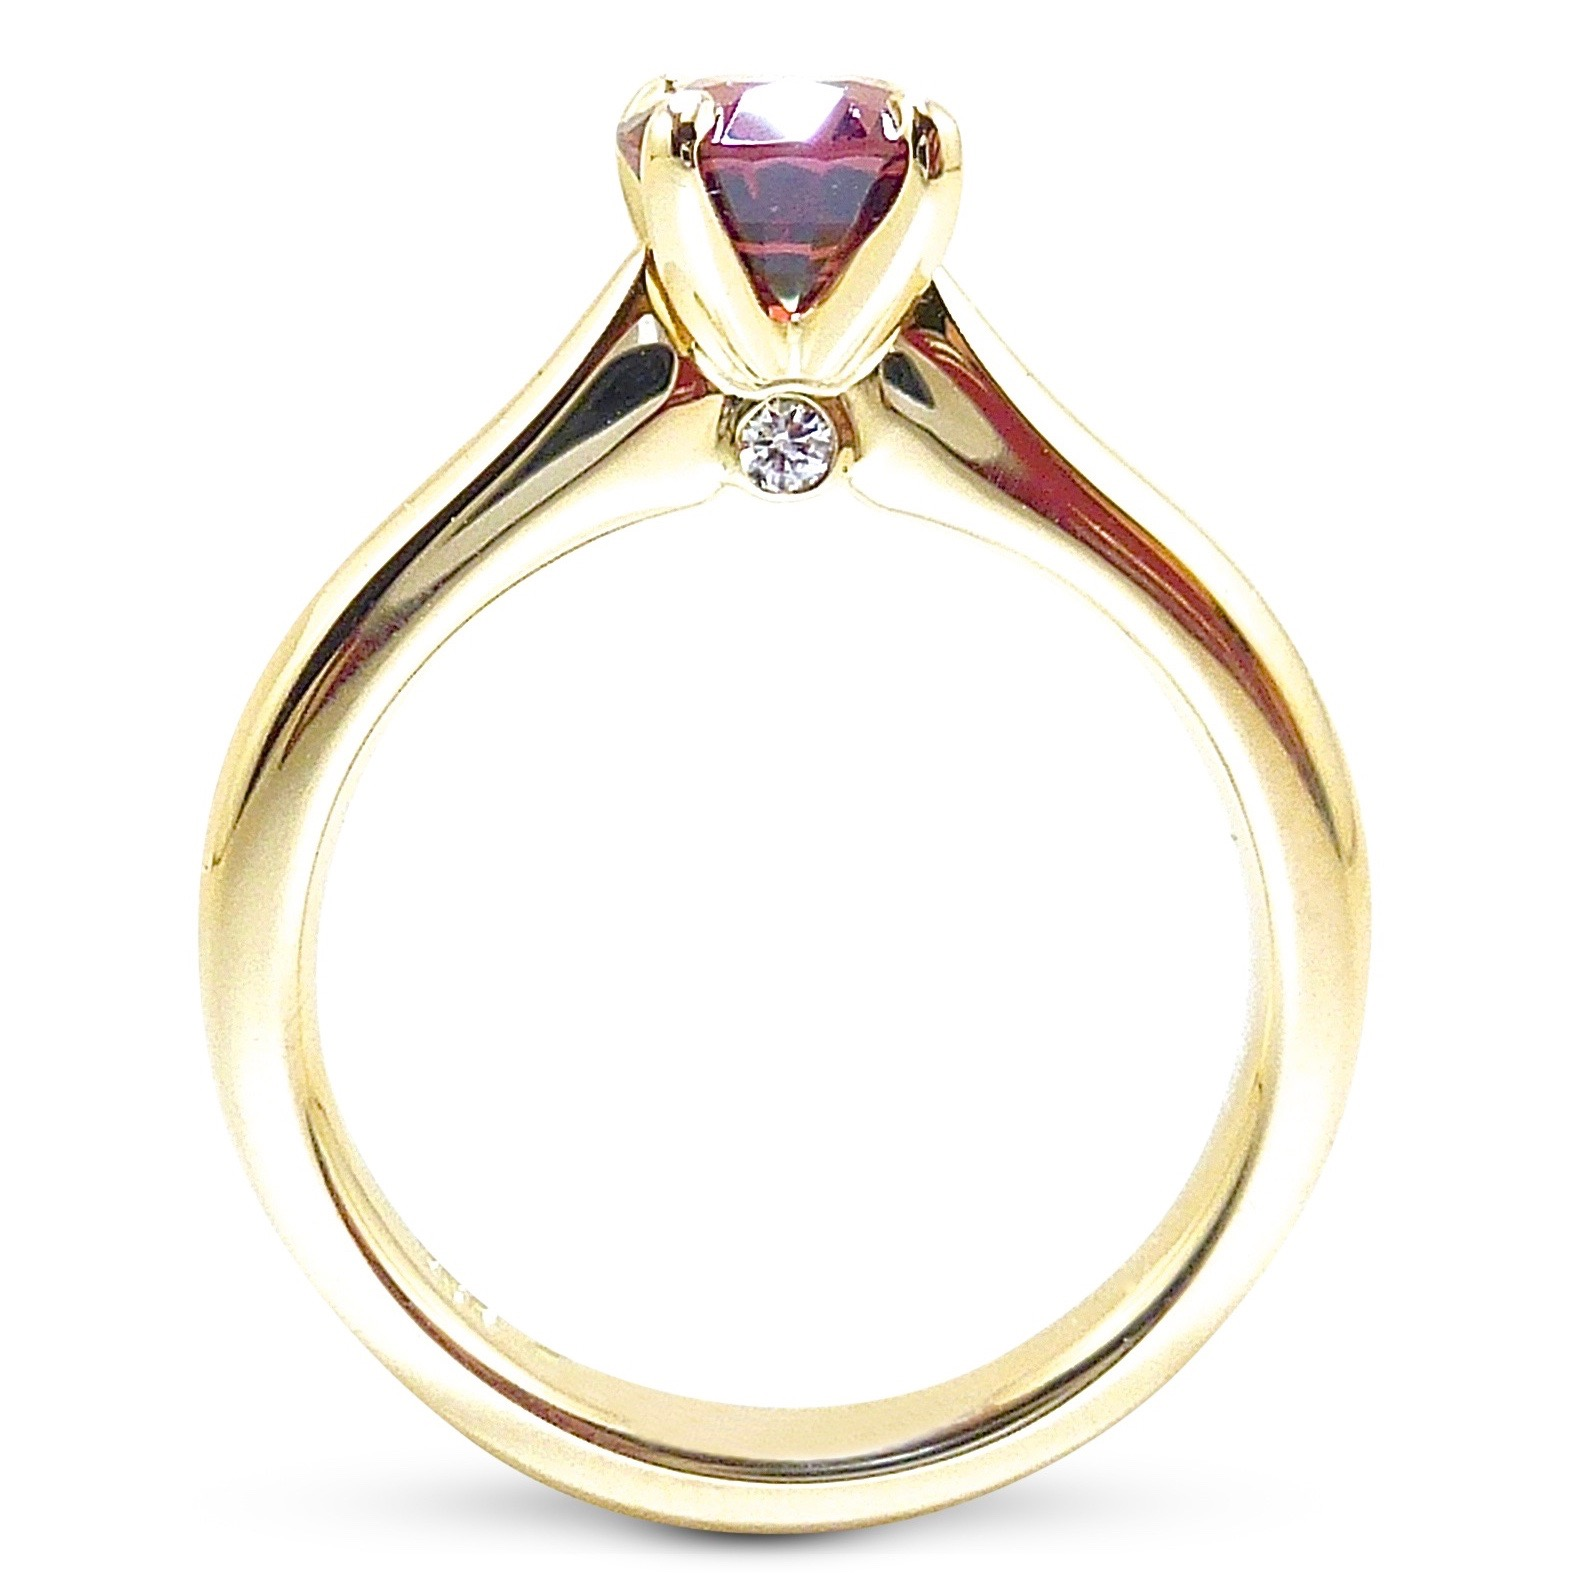 Red spinel and hidden diamond engagement ring